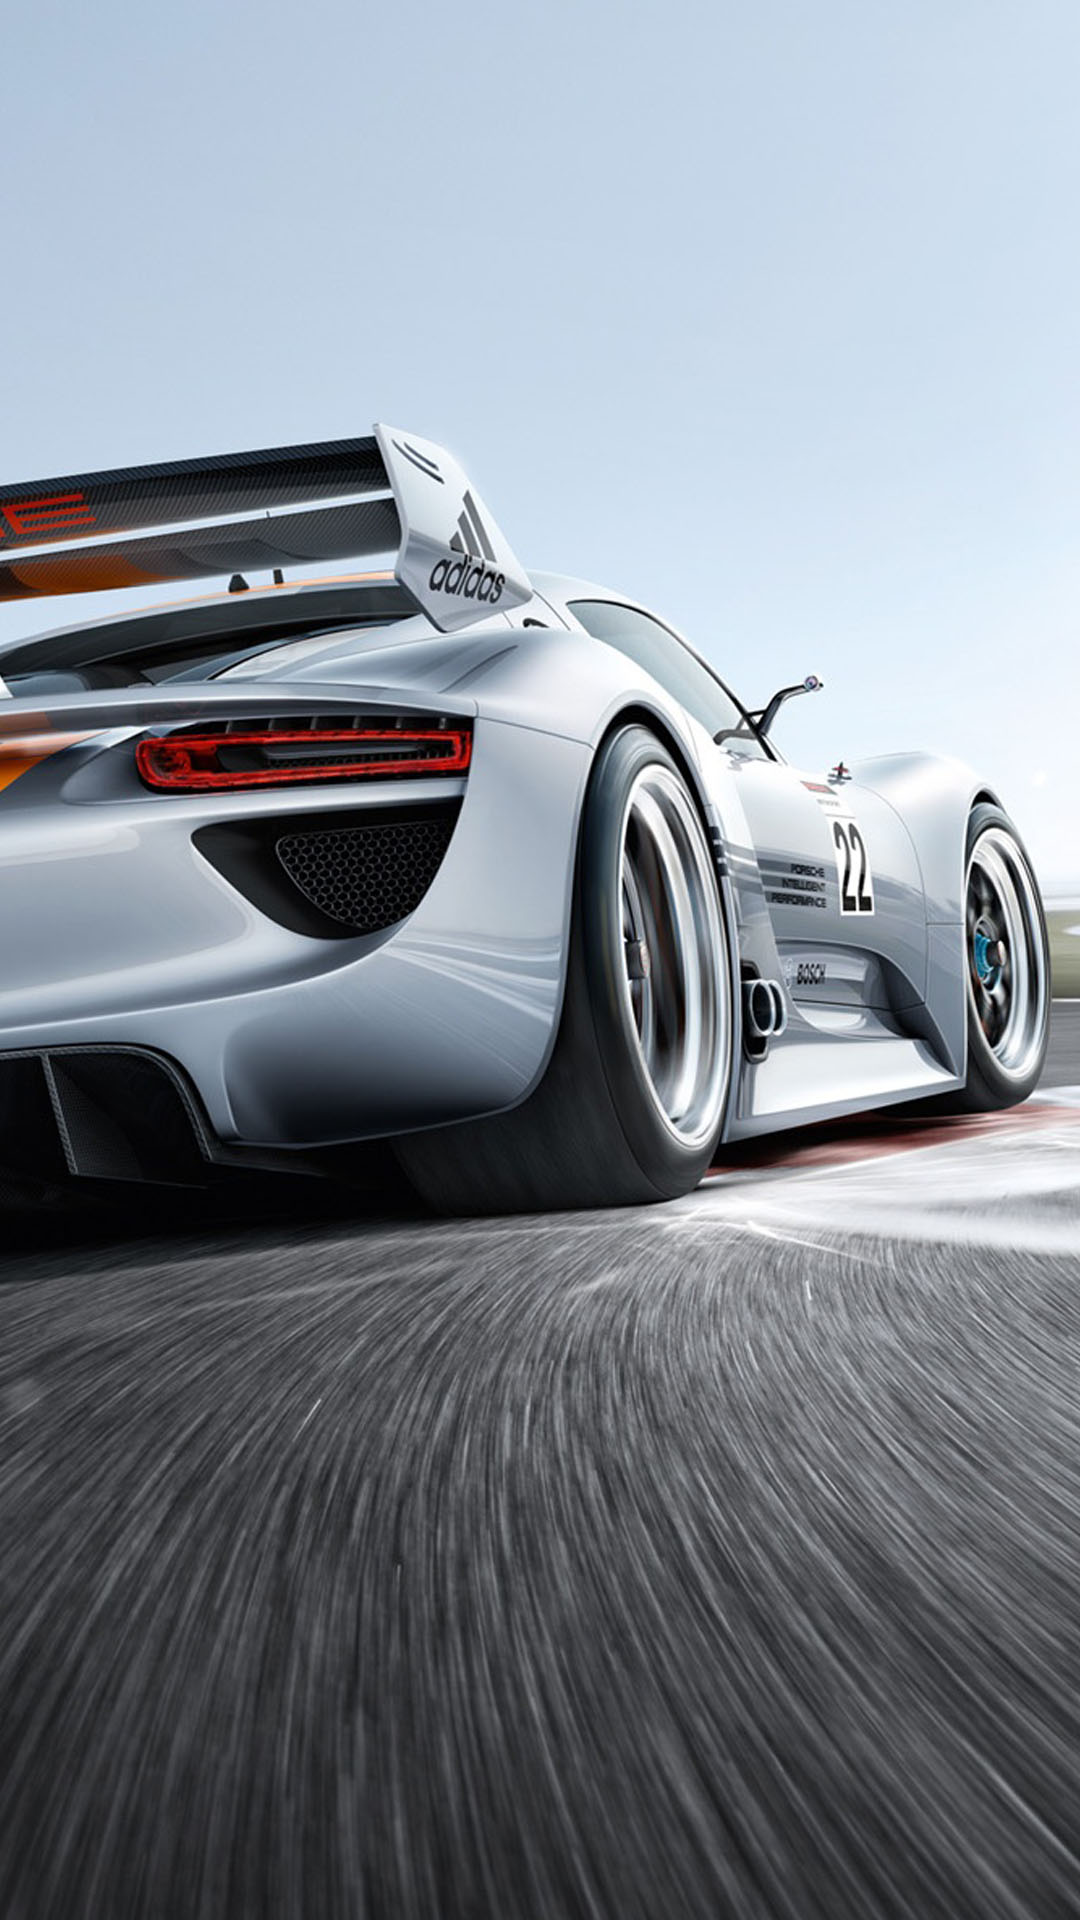 Porsche Car Hd Wallpaper Free Download Porsche 918 Rsr Best Htc One Wallpapers Free And Easy